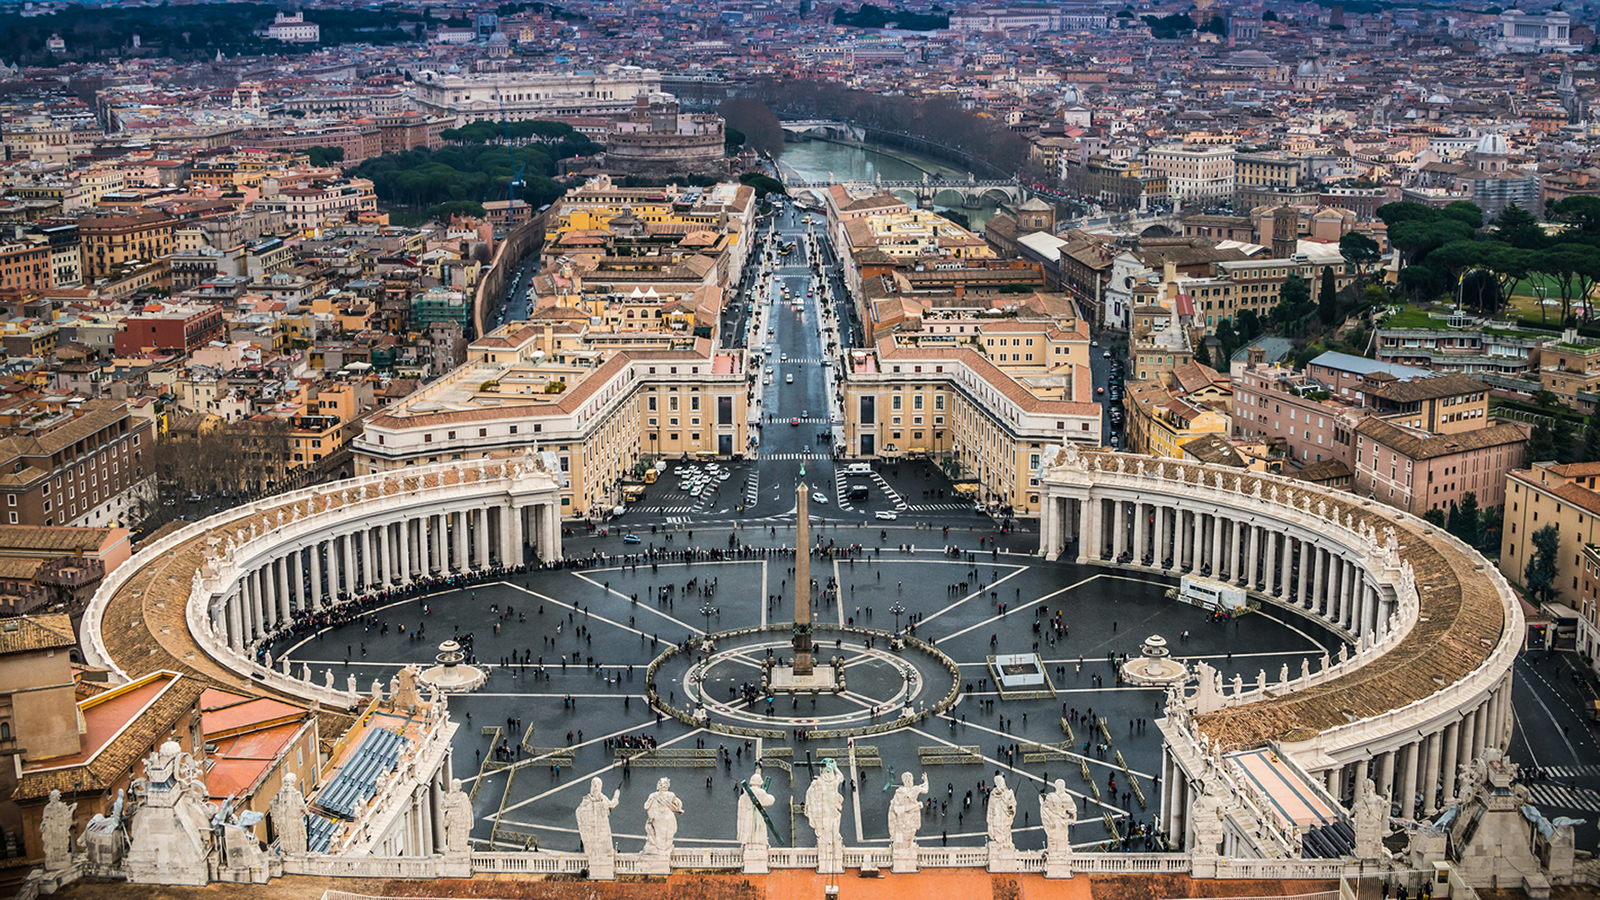 Aerial View of St. Peter's Square at the Vatican